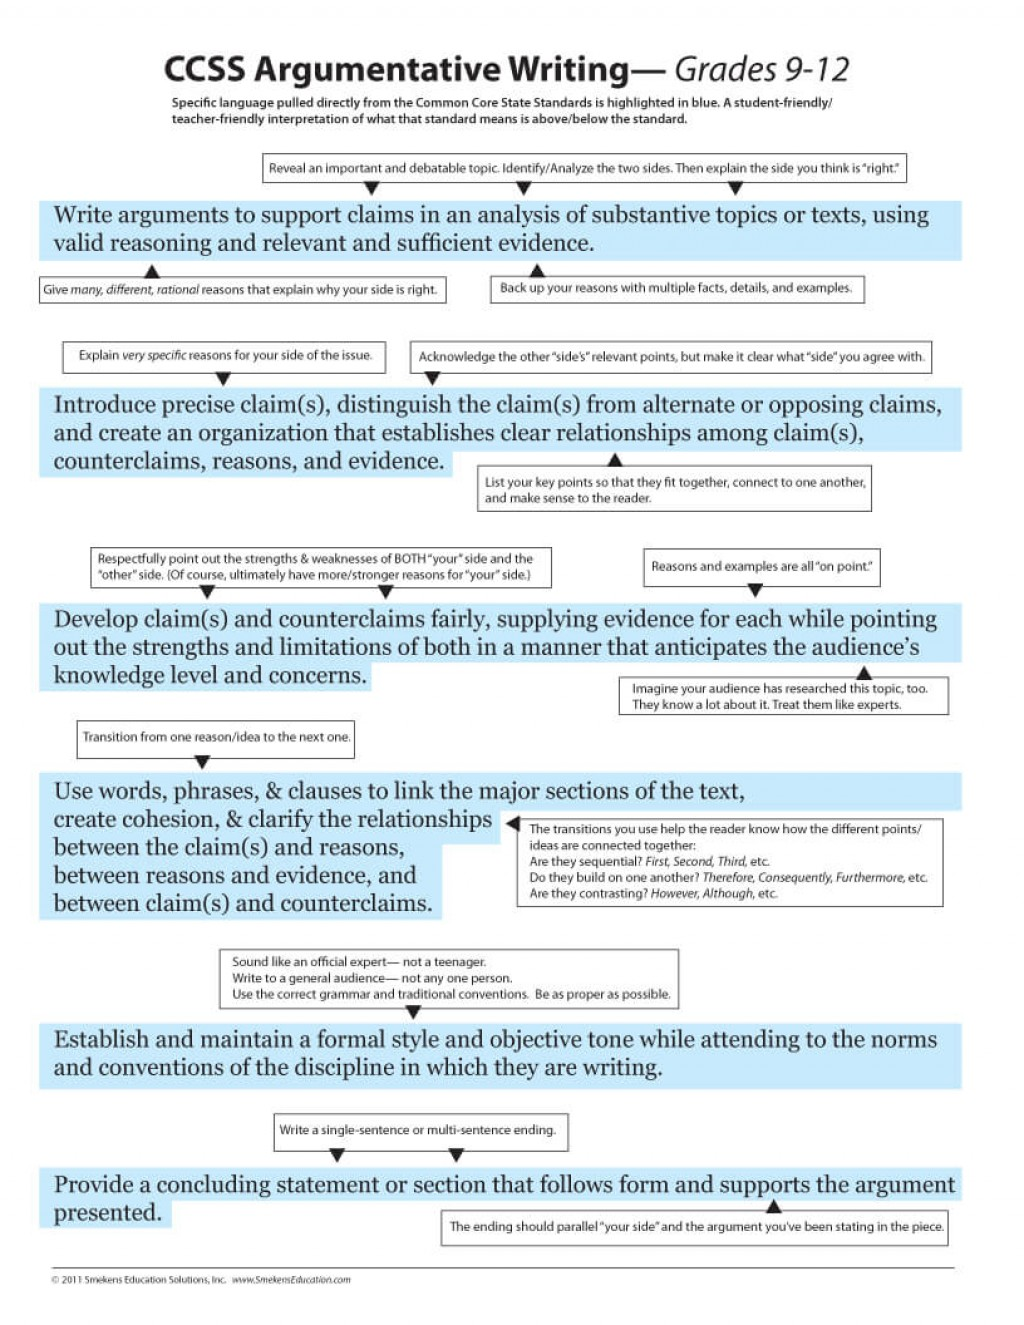 002 Essay Example The Proper Style For An Argumentative Is Ccss Grade 9 Stunning Formal Casual Informal Academic.friendly.informal.personal Academic. Friendly. Informal. Personal Large